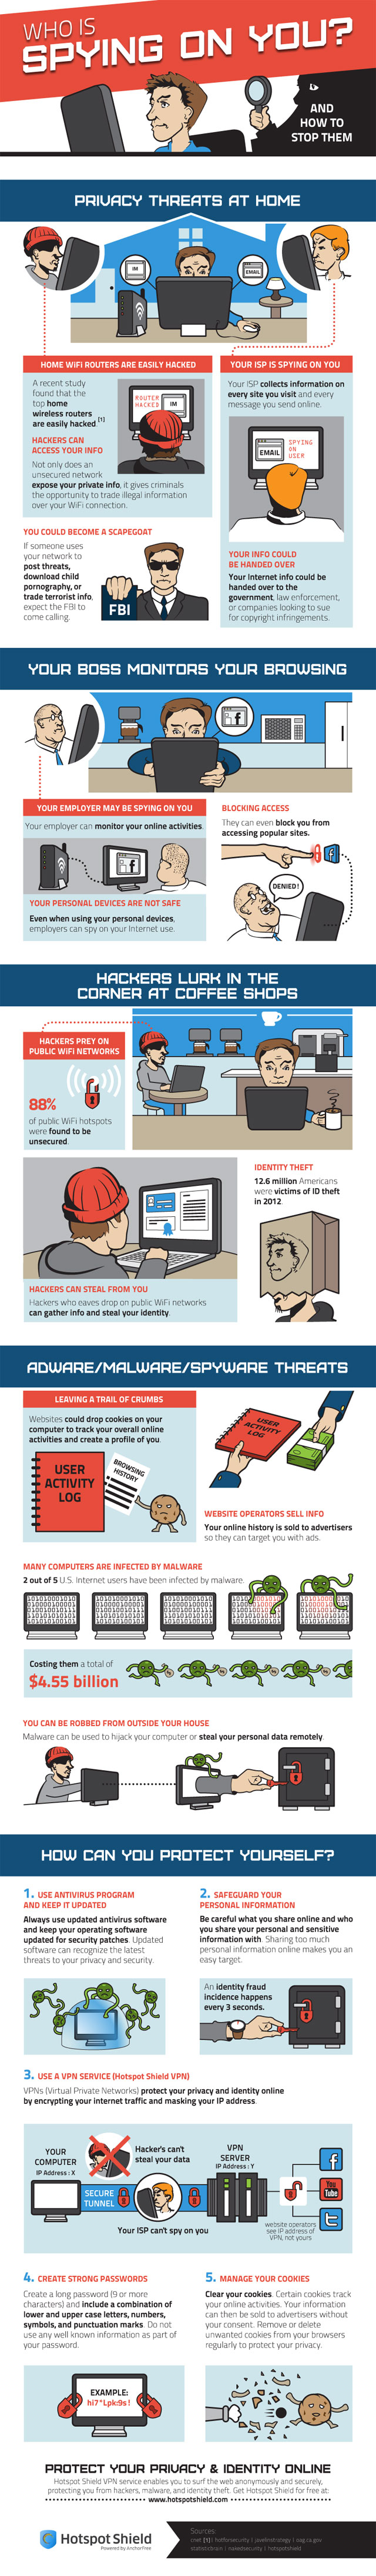 online-spying-hacking-security-infographic